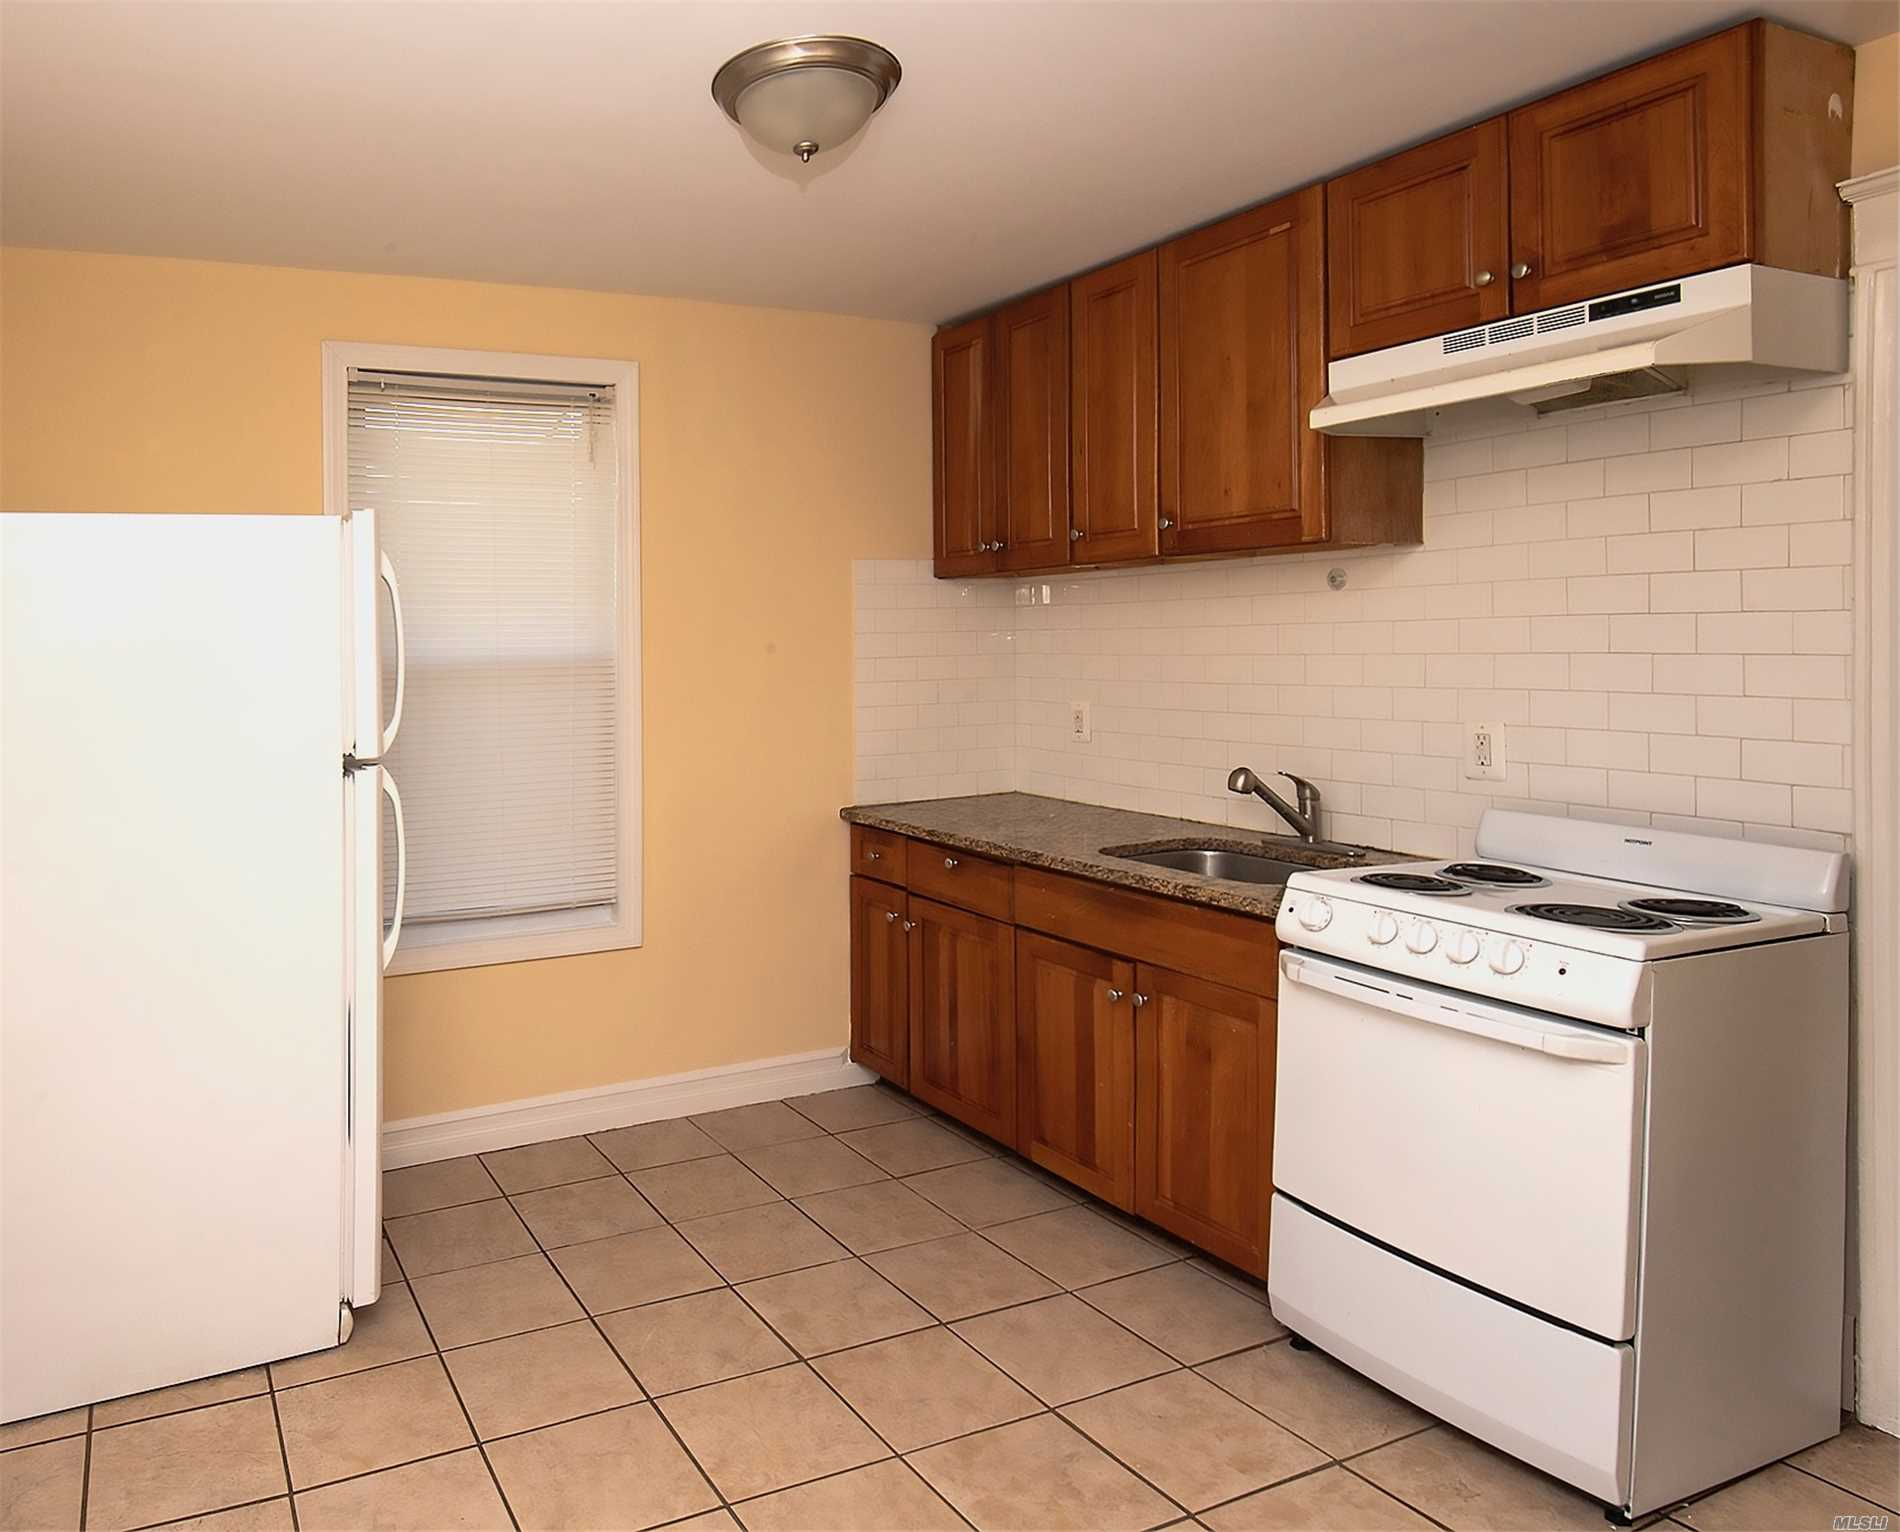 Lovely Apartment Located On The 2nd Floor. There Is 1 Large Master Bedroom, A Kitchen And Bath, Includes Use Of The Backyard And Driveway. Excellent Location For Public Transportation And Shopping. Tenant Must Maintain The Grounds.